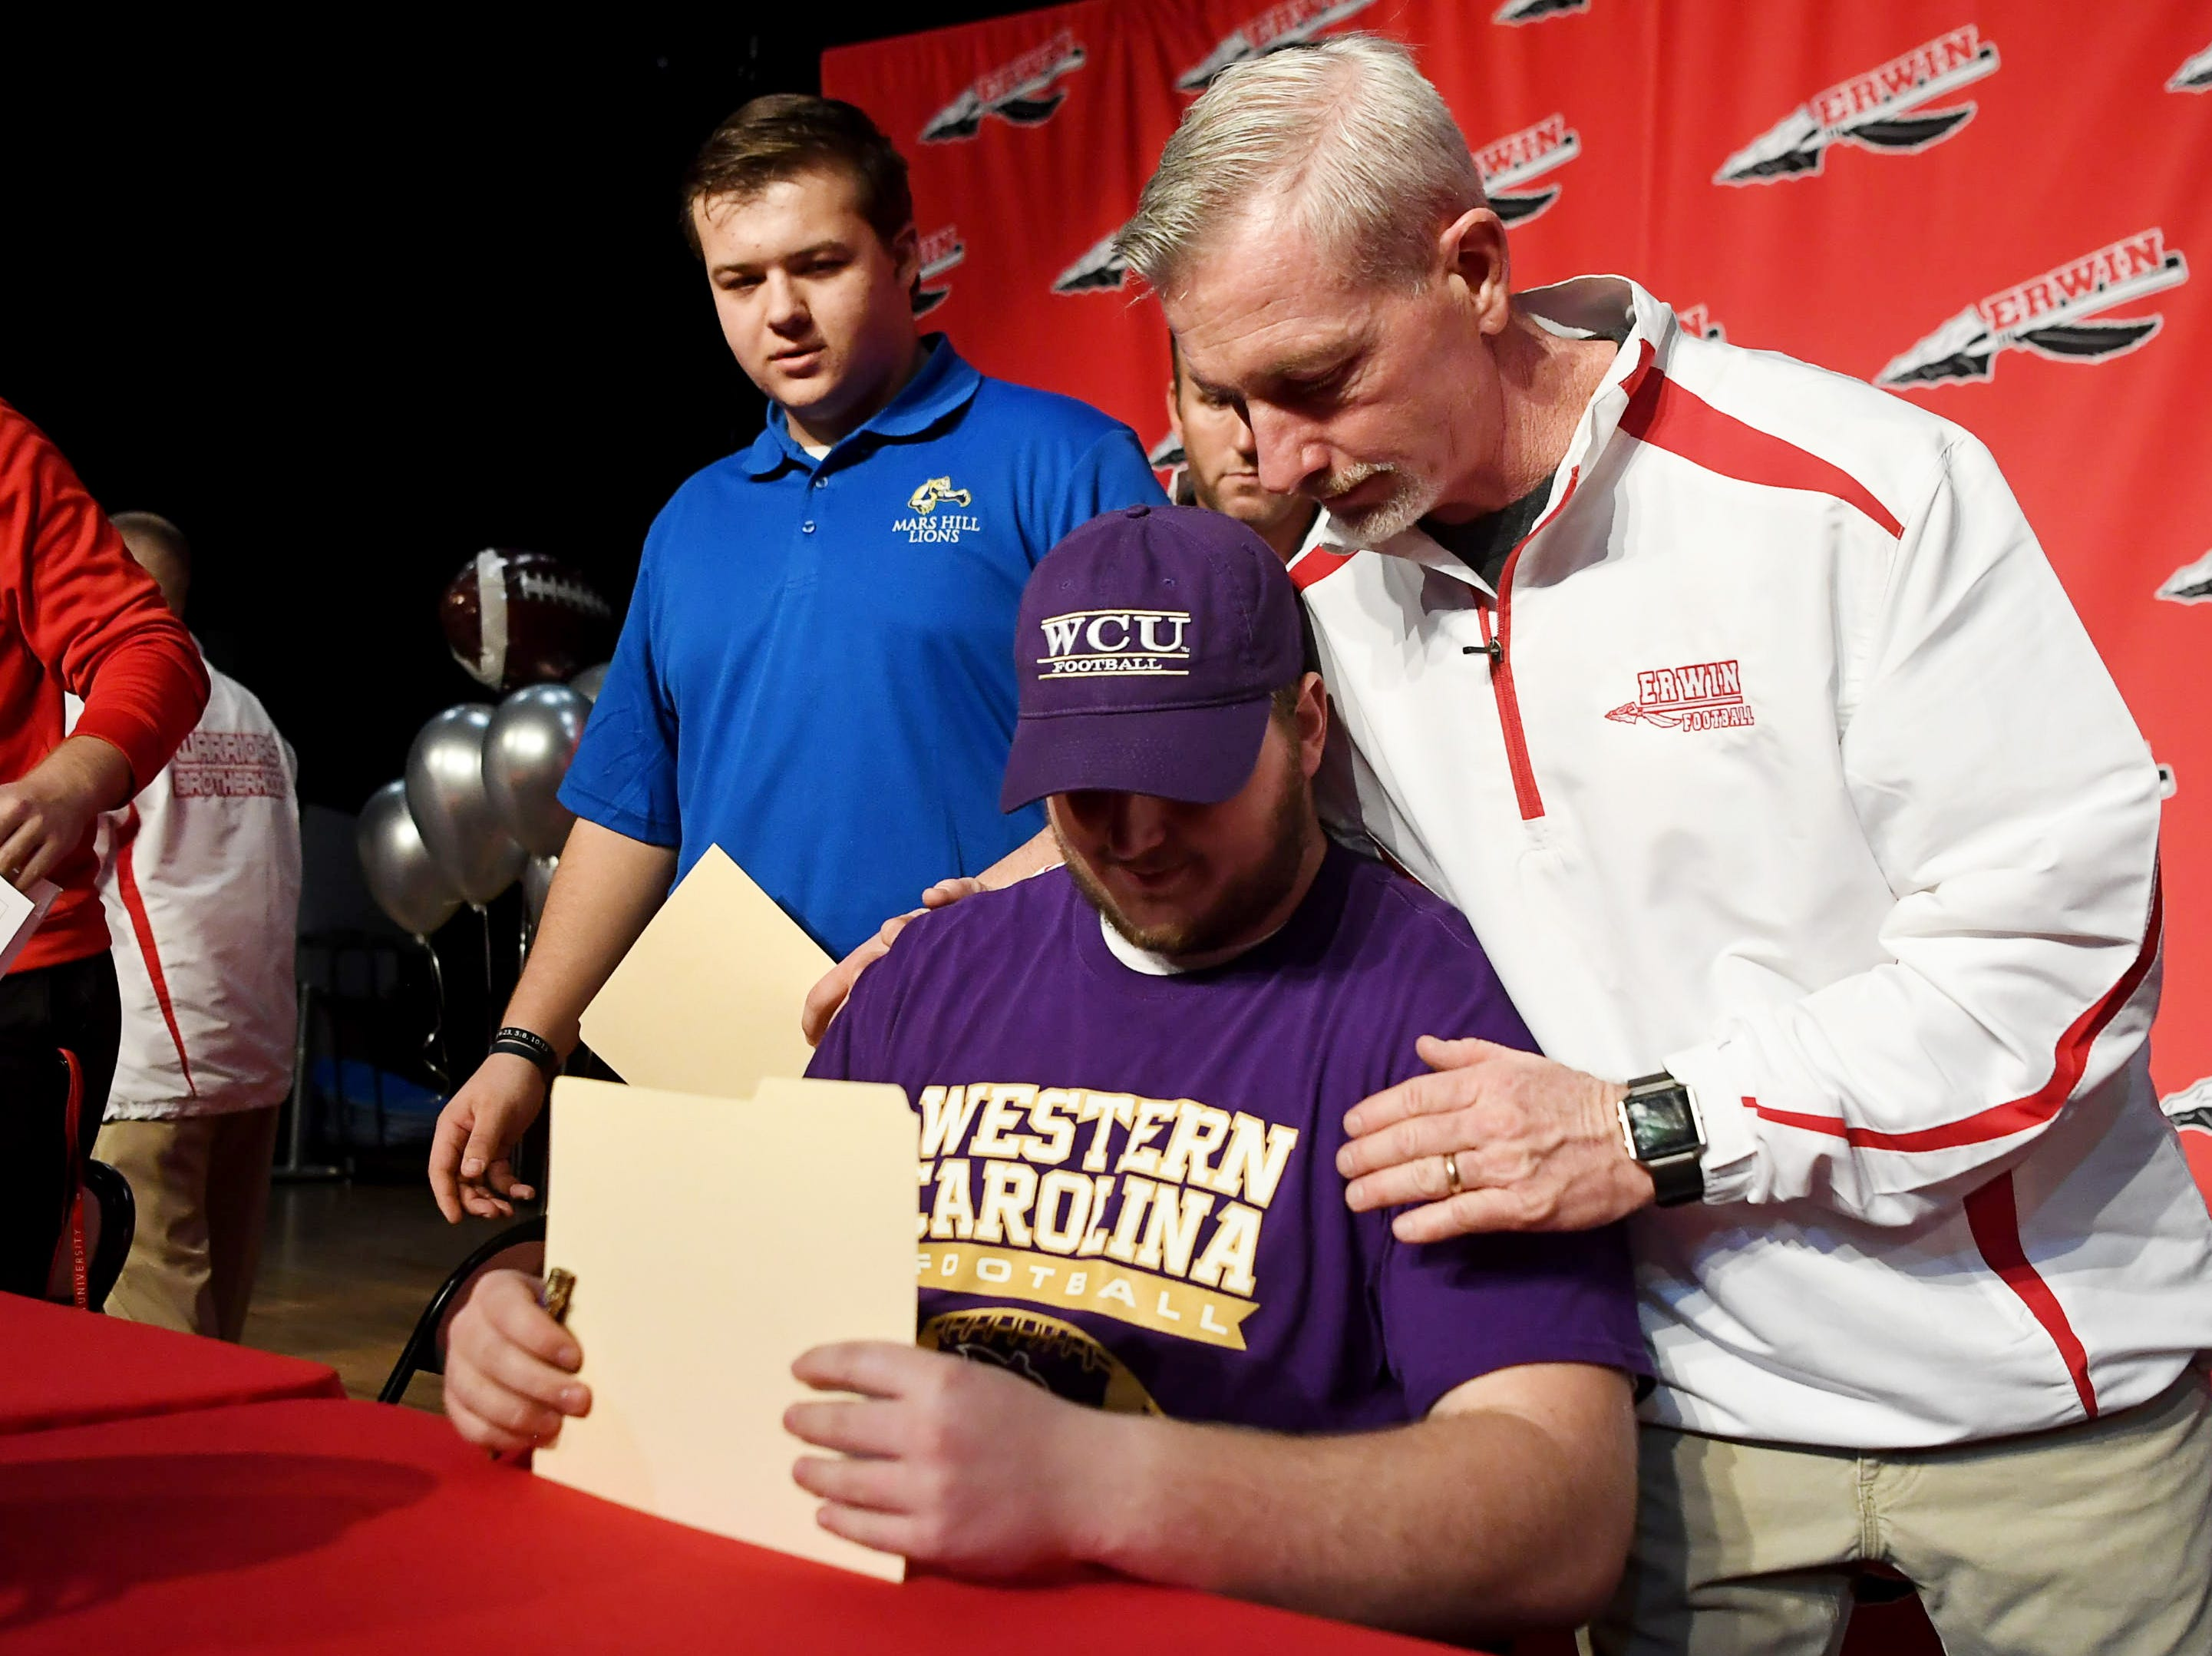 Erwin running back coach Patrick Bohanon hugs Dillon Luther after he signed to play football at Western Carolina University Feb. 6, 2019.